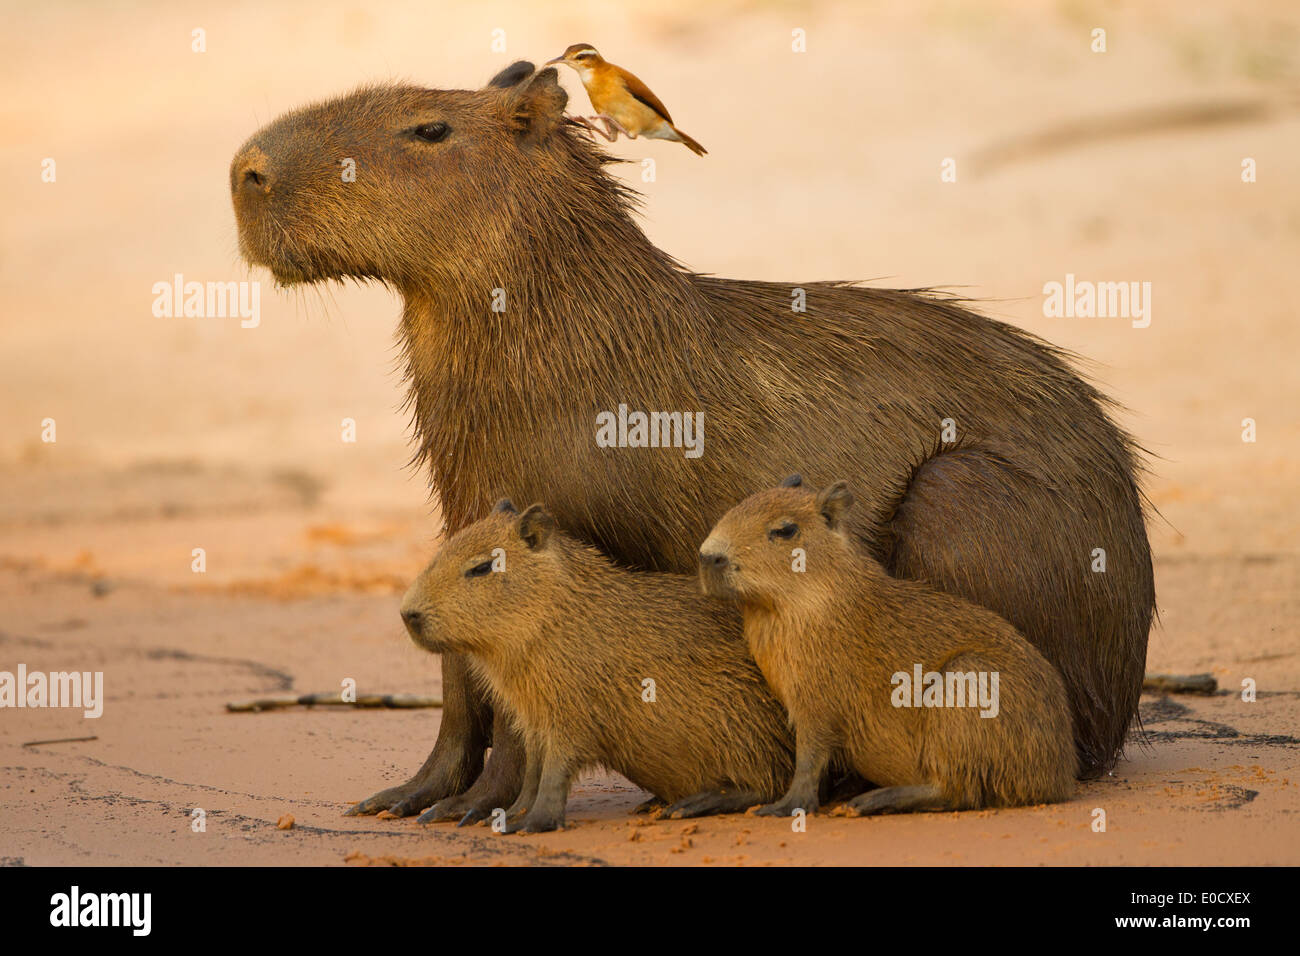 Capybara, the world's largest rodent, adult with young on ...